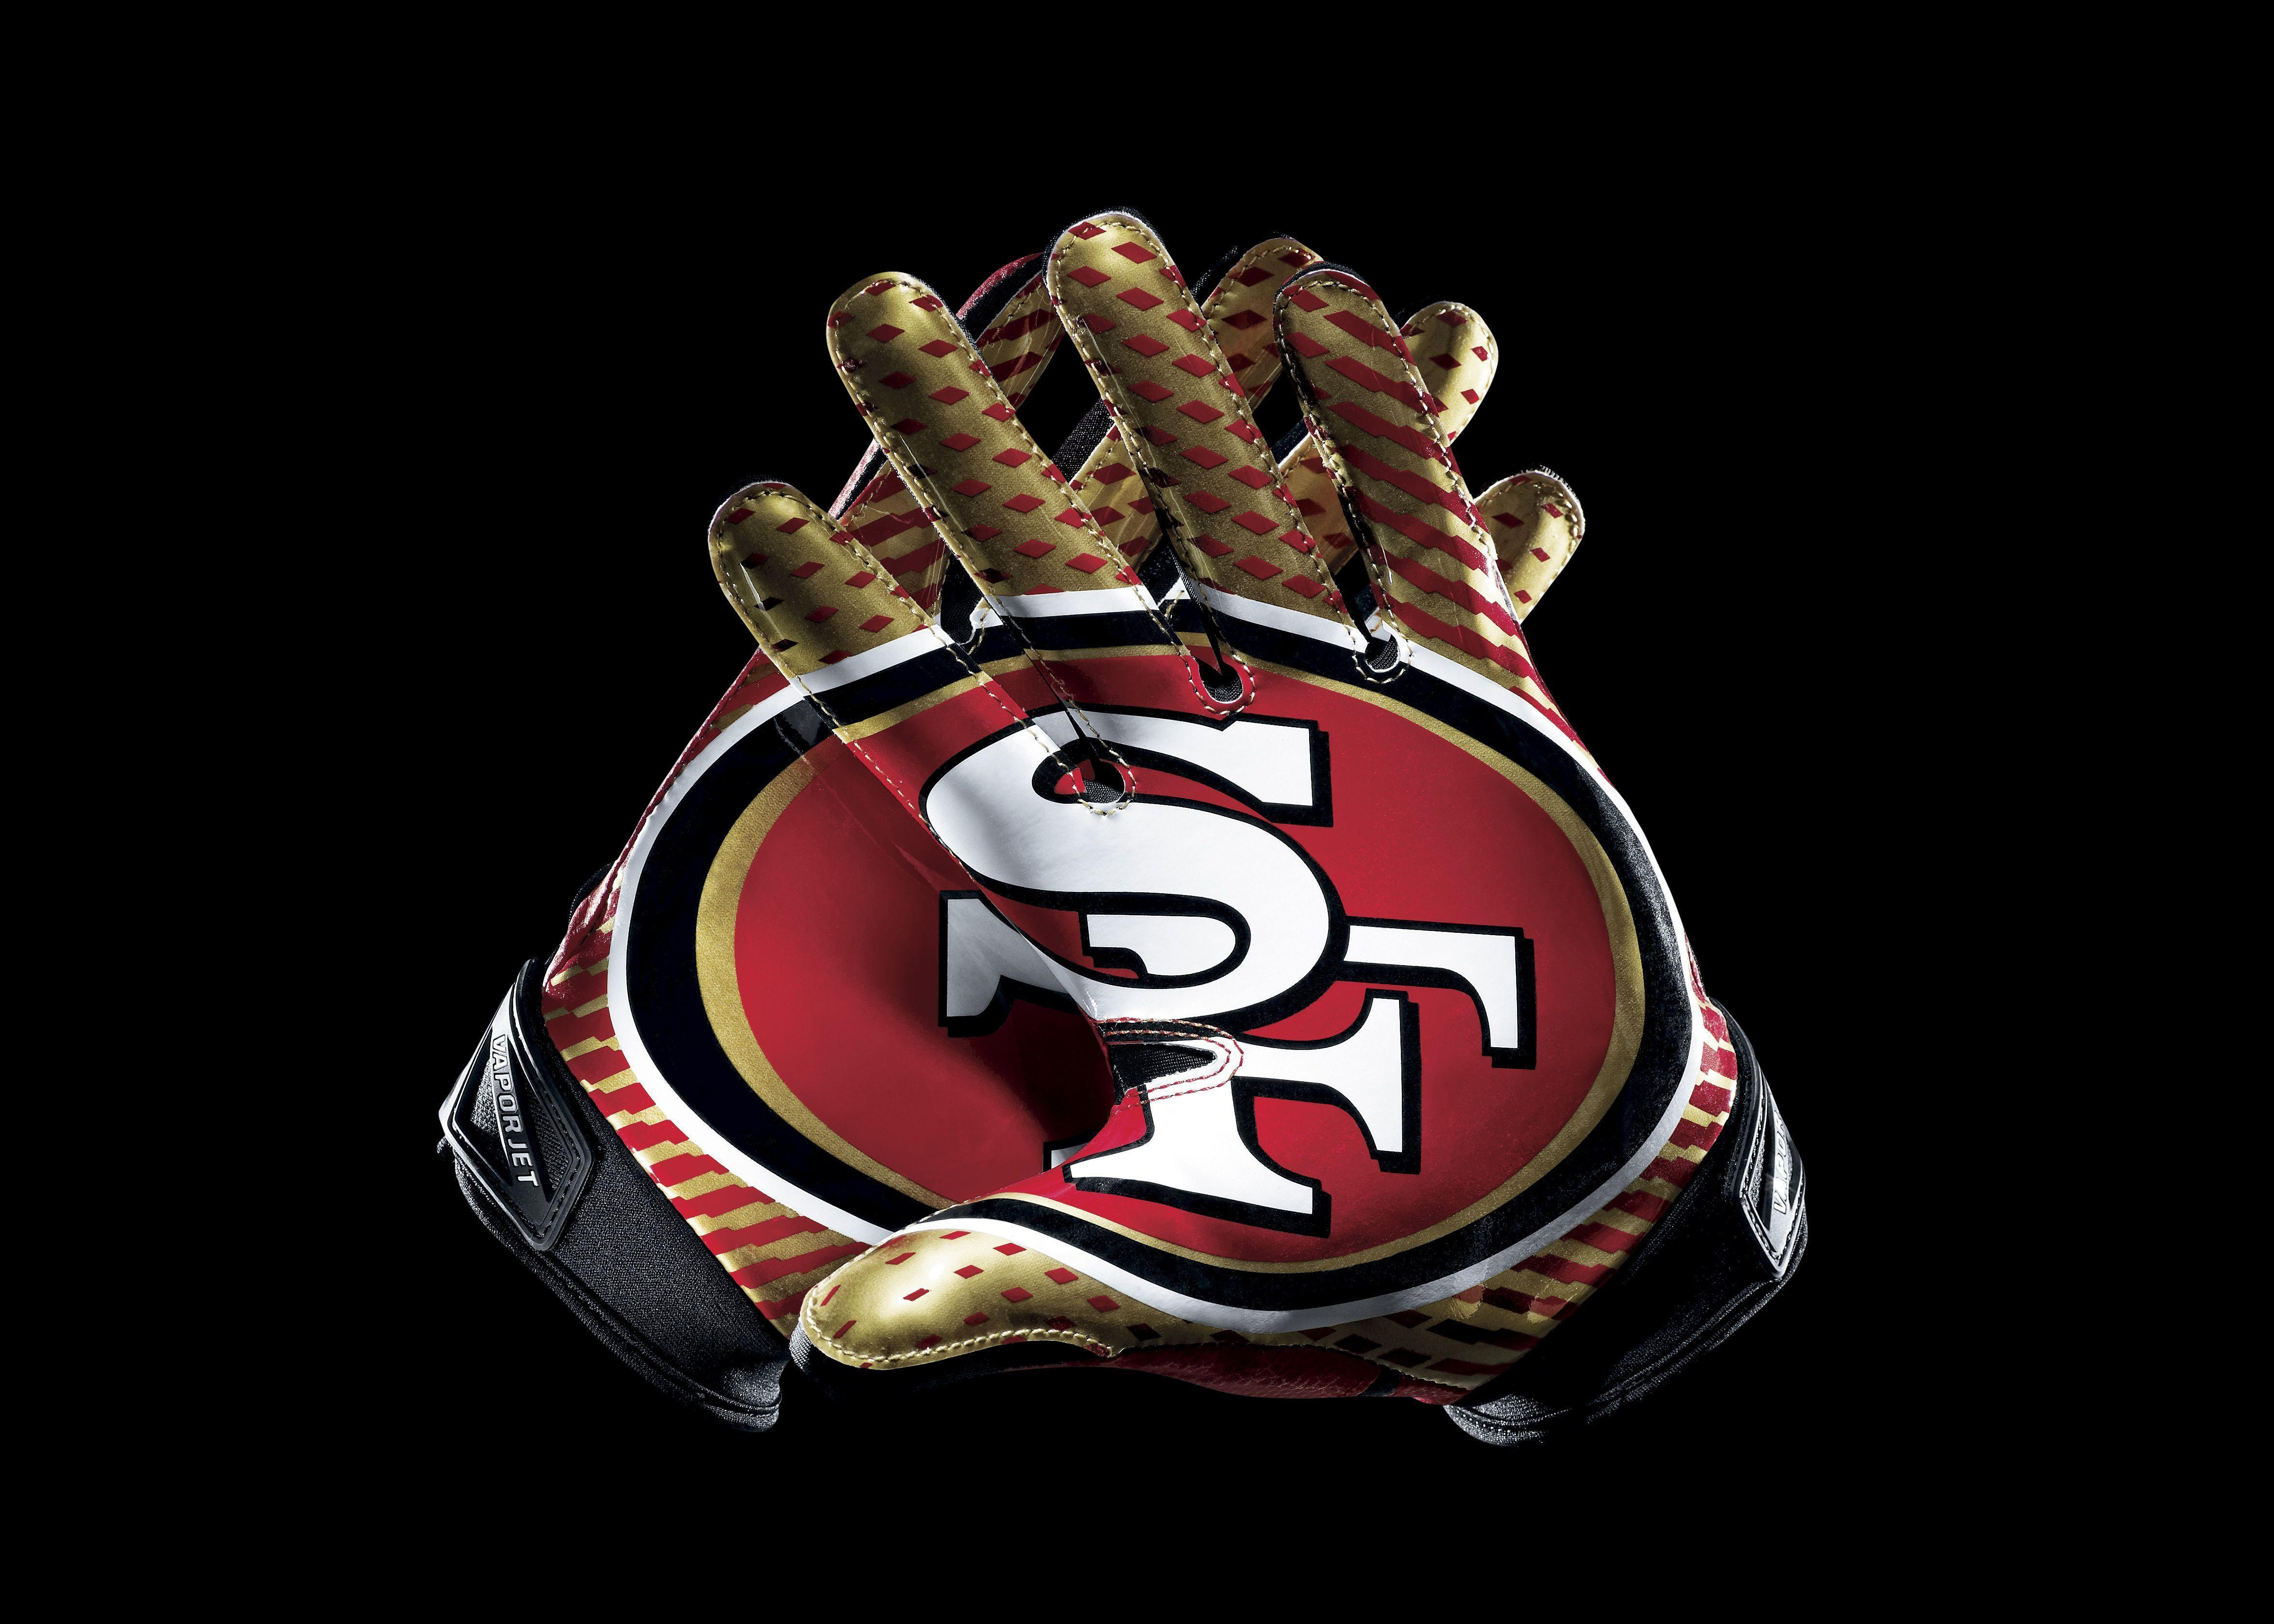 San Francisco 49ers Wallpapers 2016